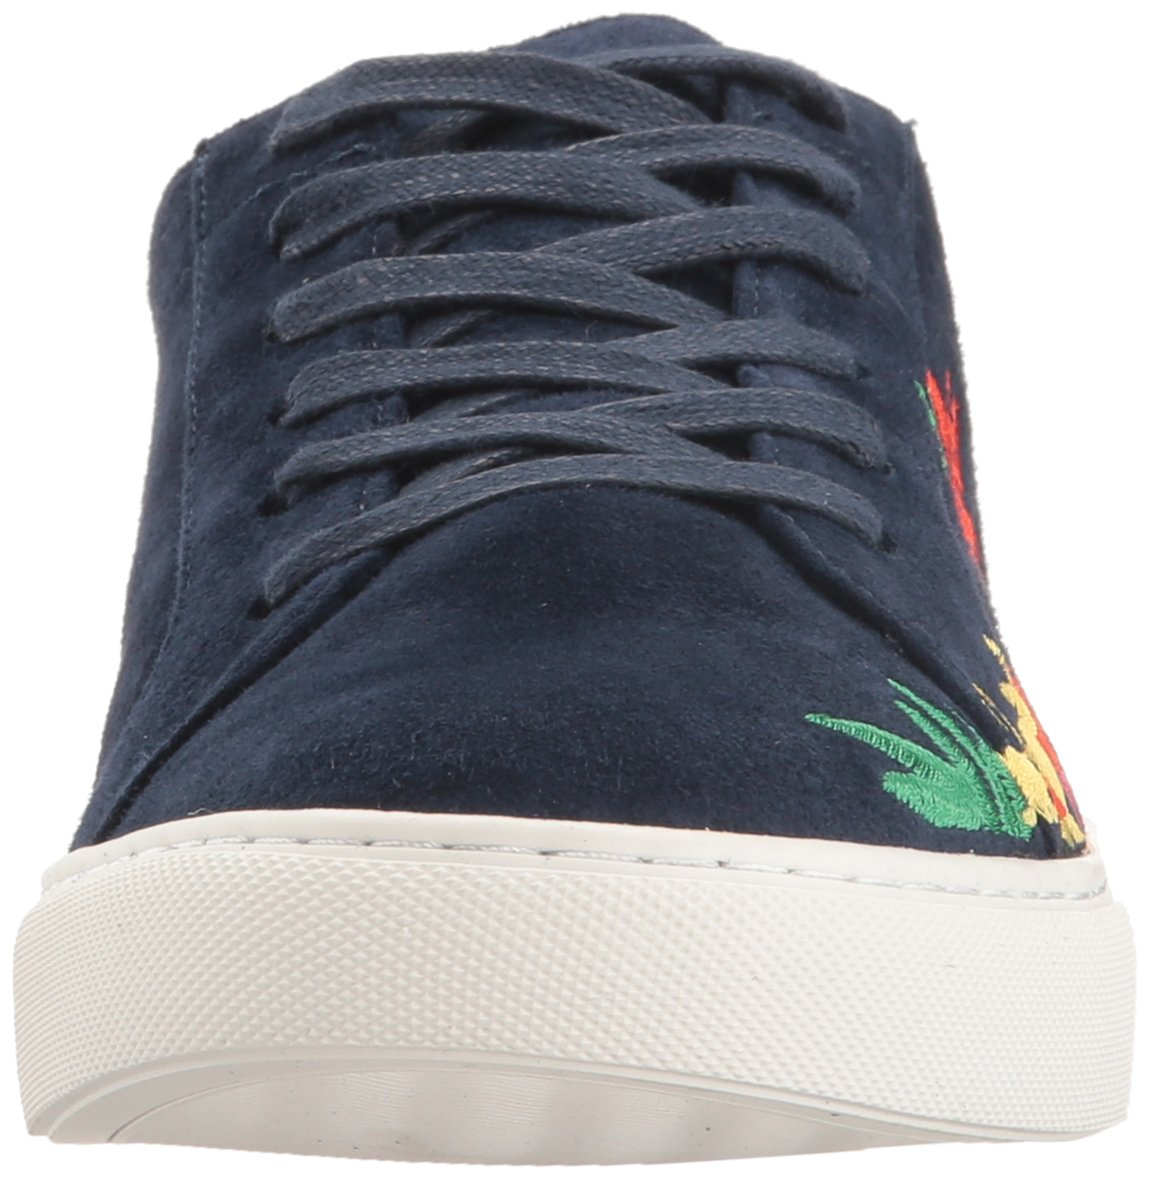 Kenneth Cole New 5.5 York Women's Kam Fashion Sneaker B01N02VPVW 5.5 New B(M) US|Navy 64213d